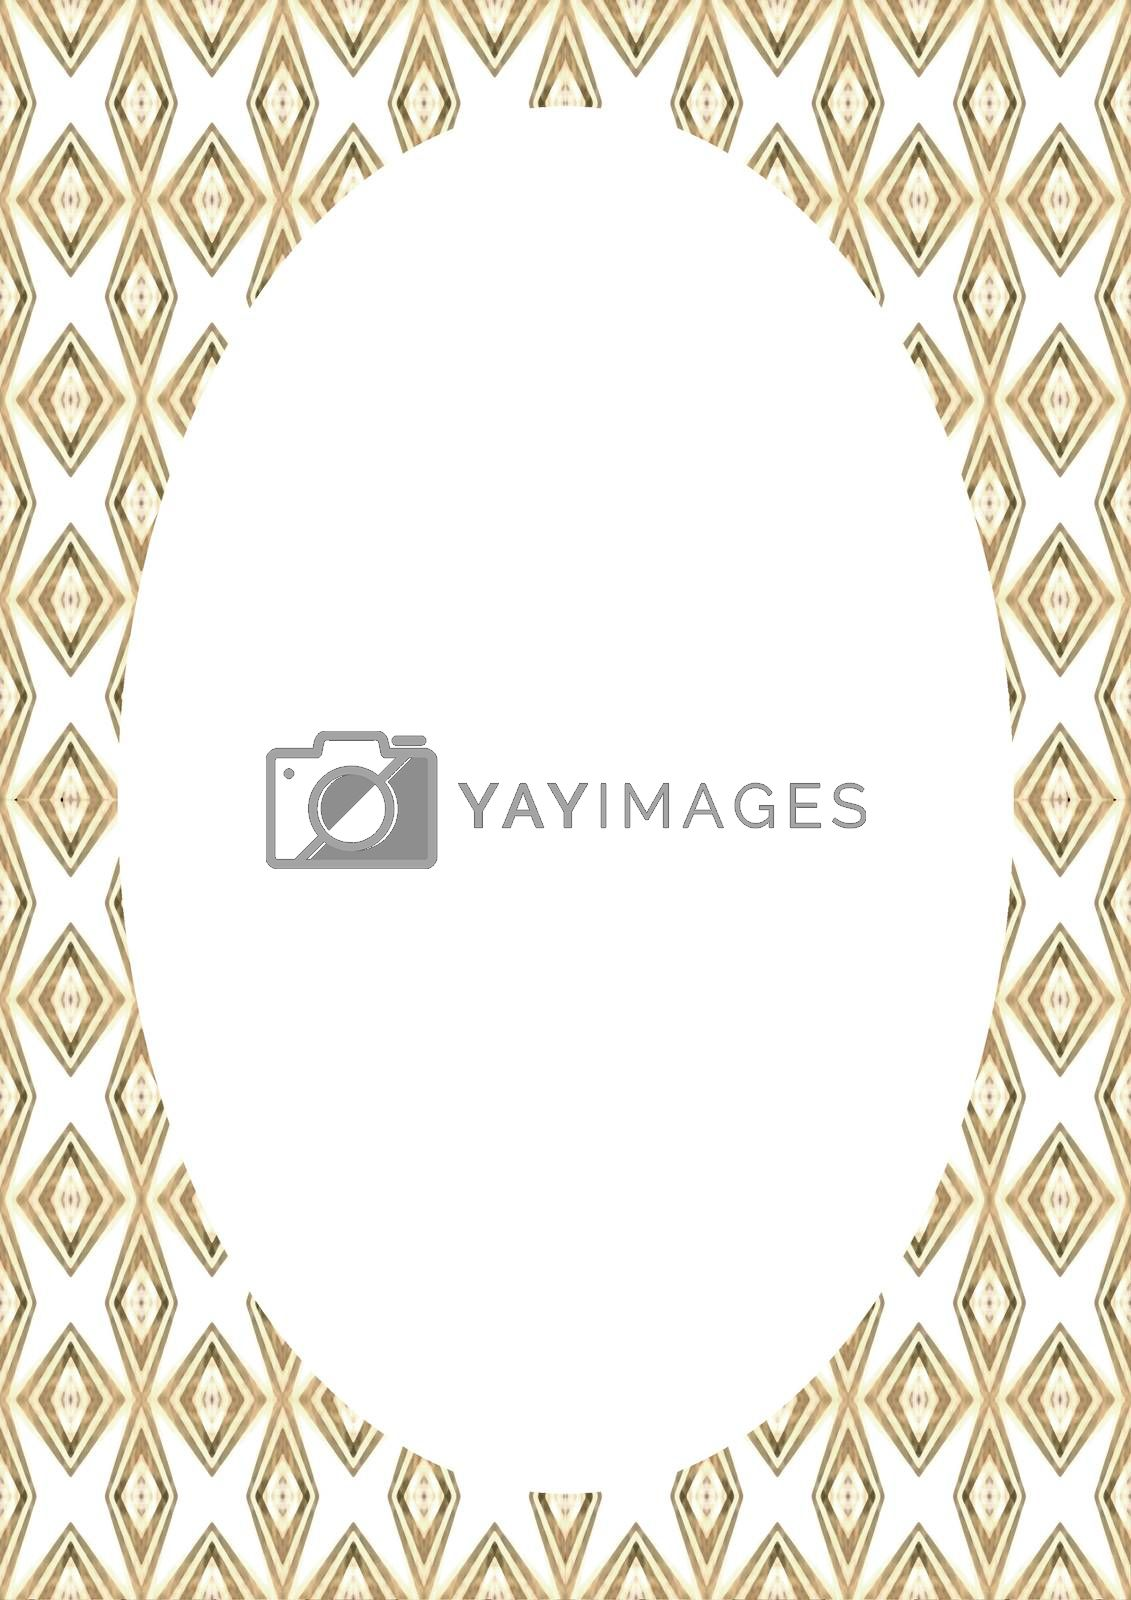 Empty Frame with Patterned Decorative Rounded Borders by DanFLCreative